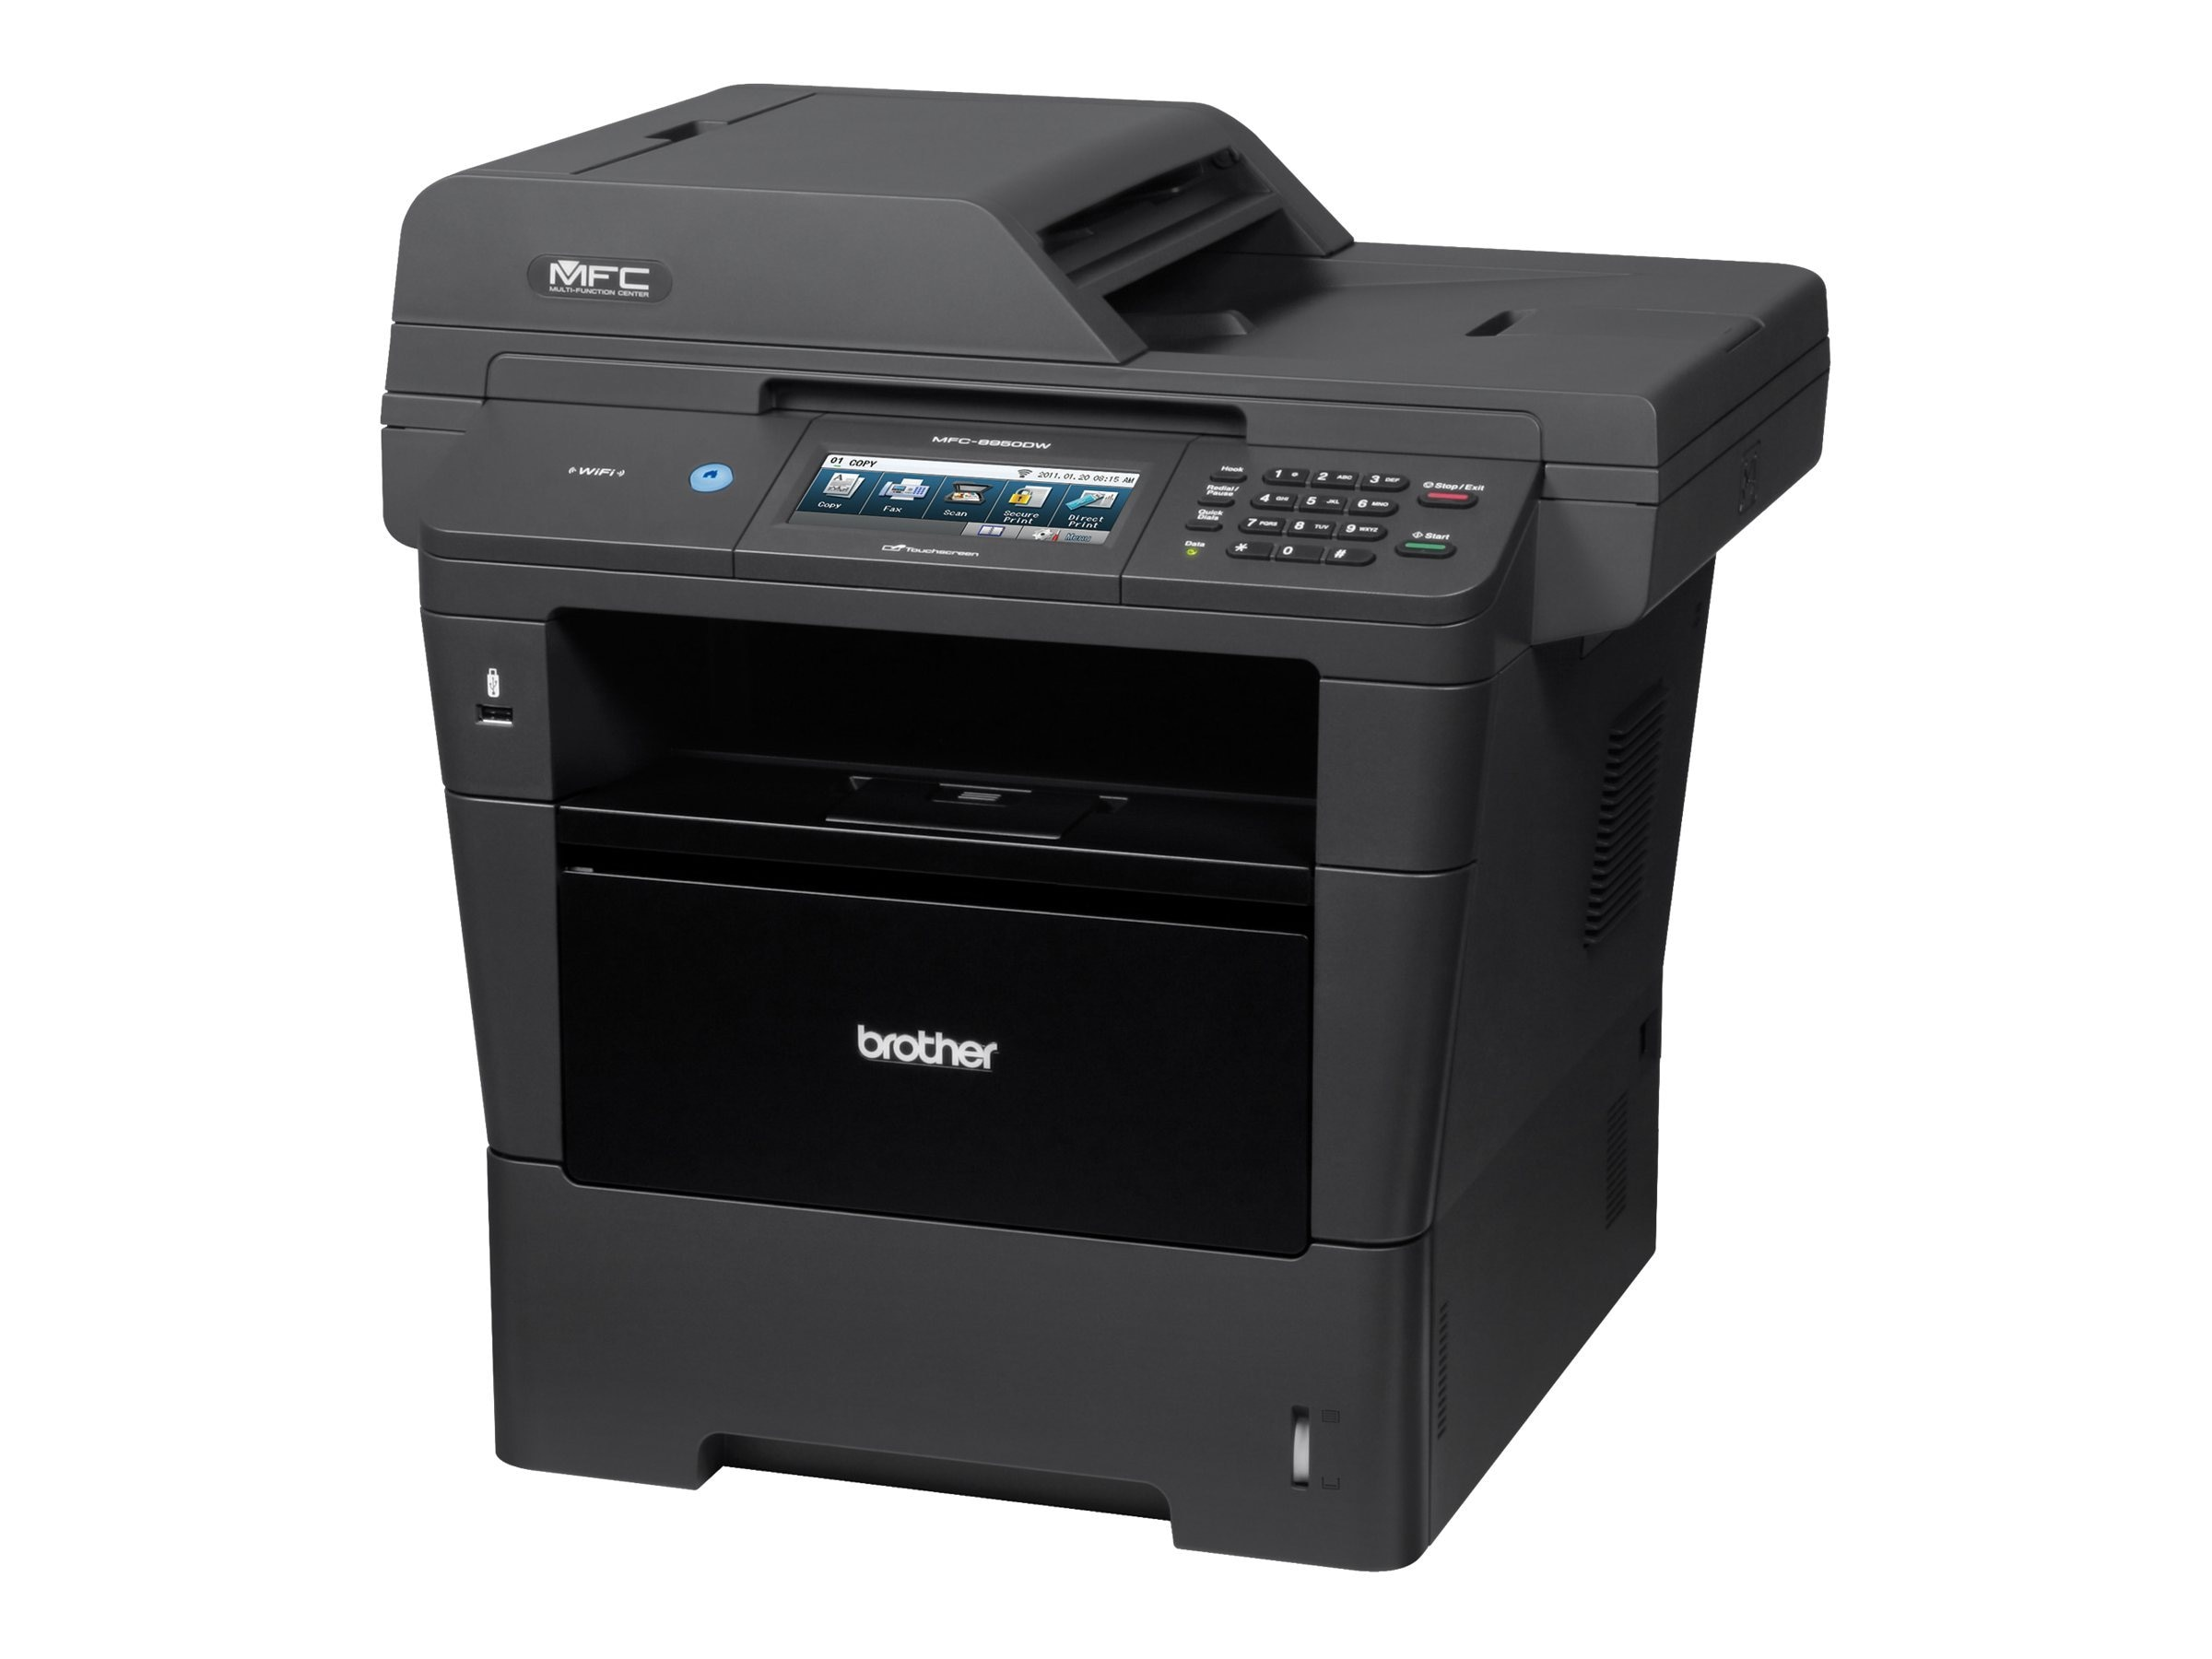 Brother MFC-8950DW Image 1